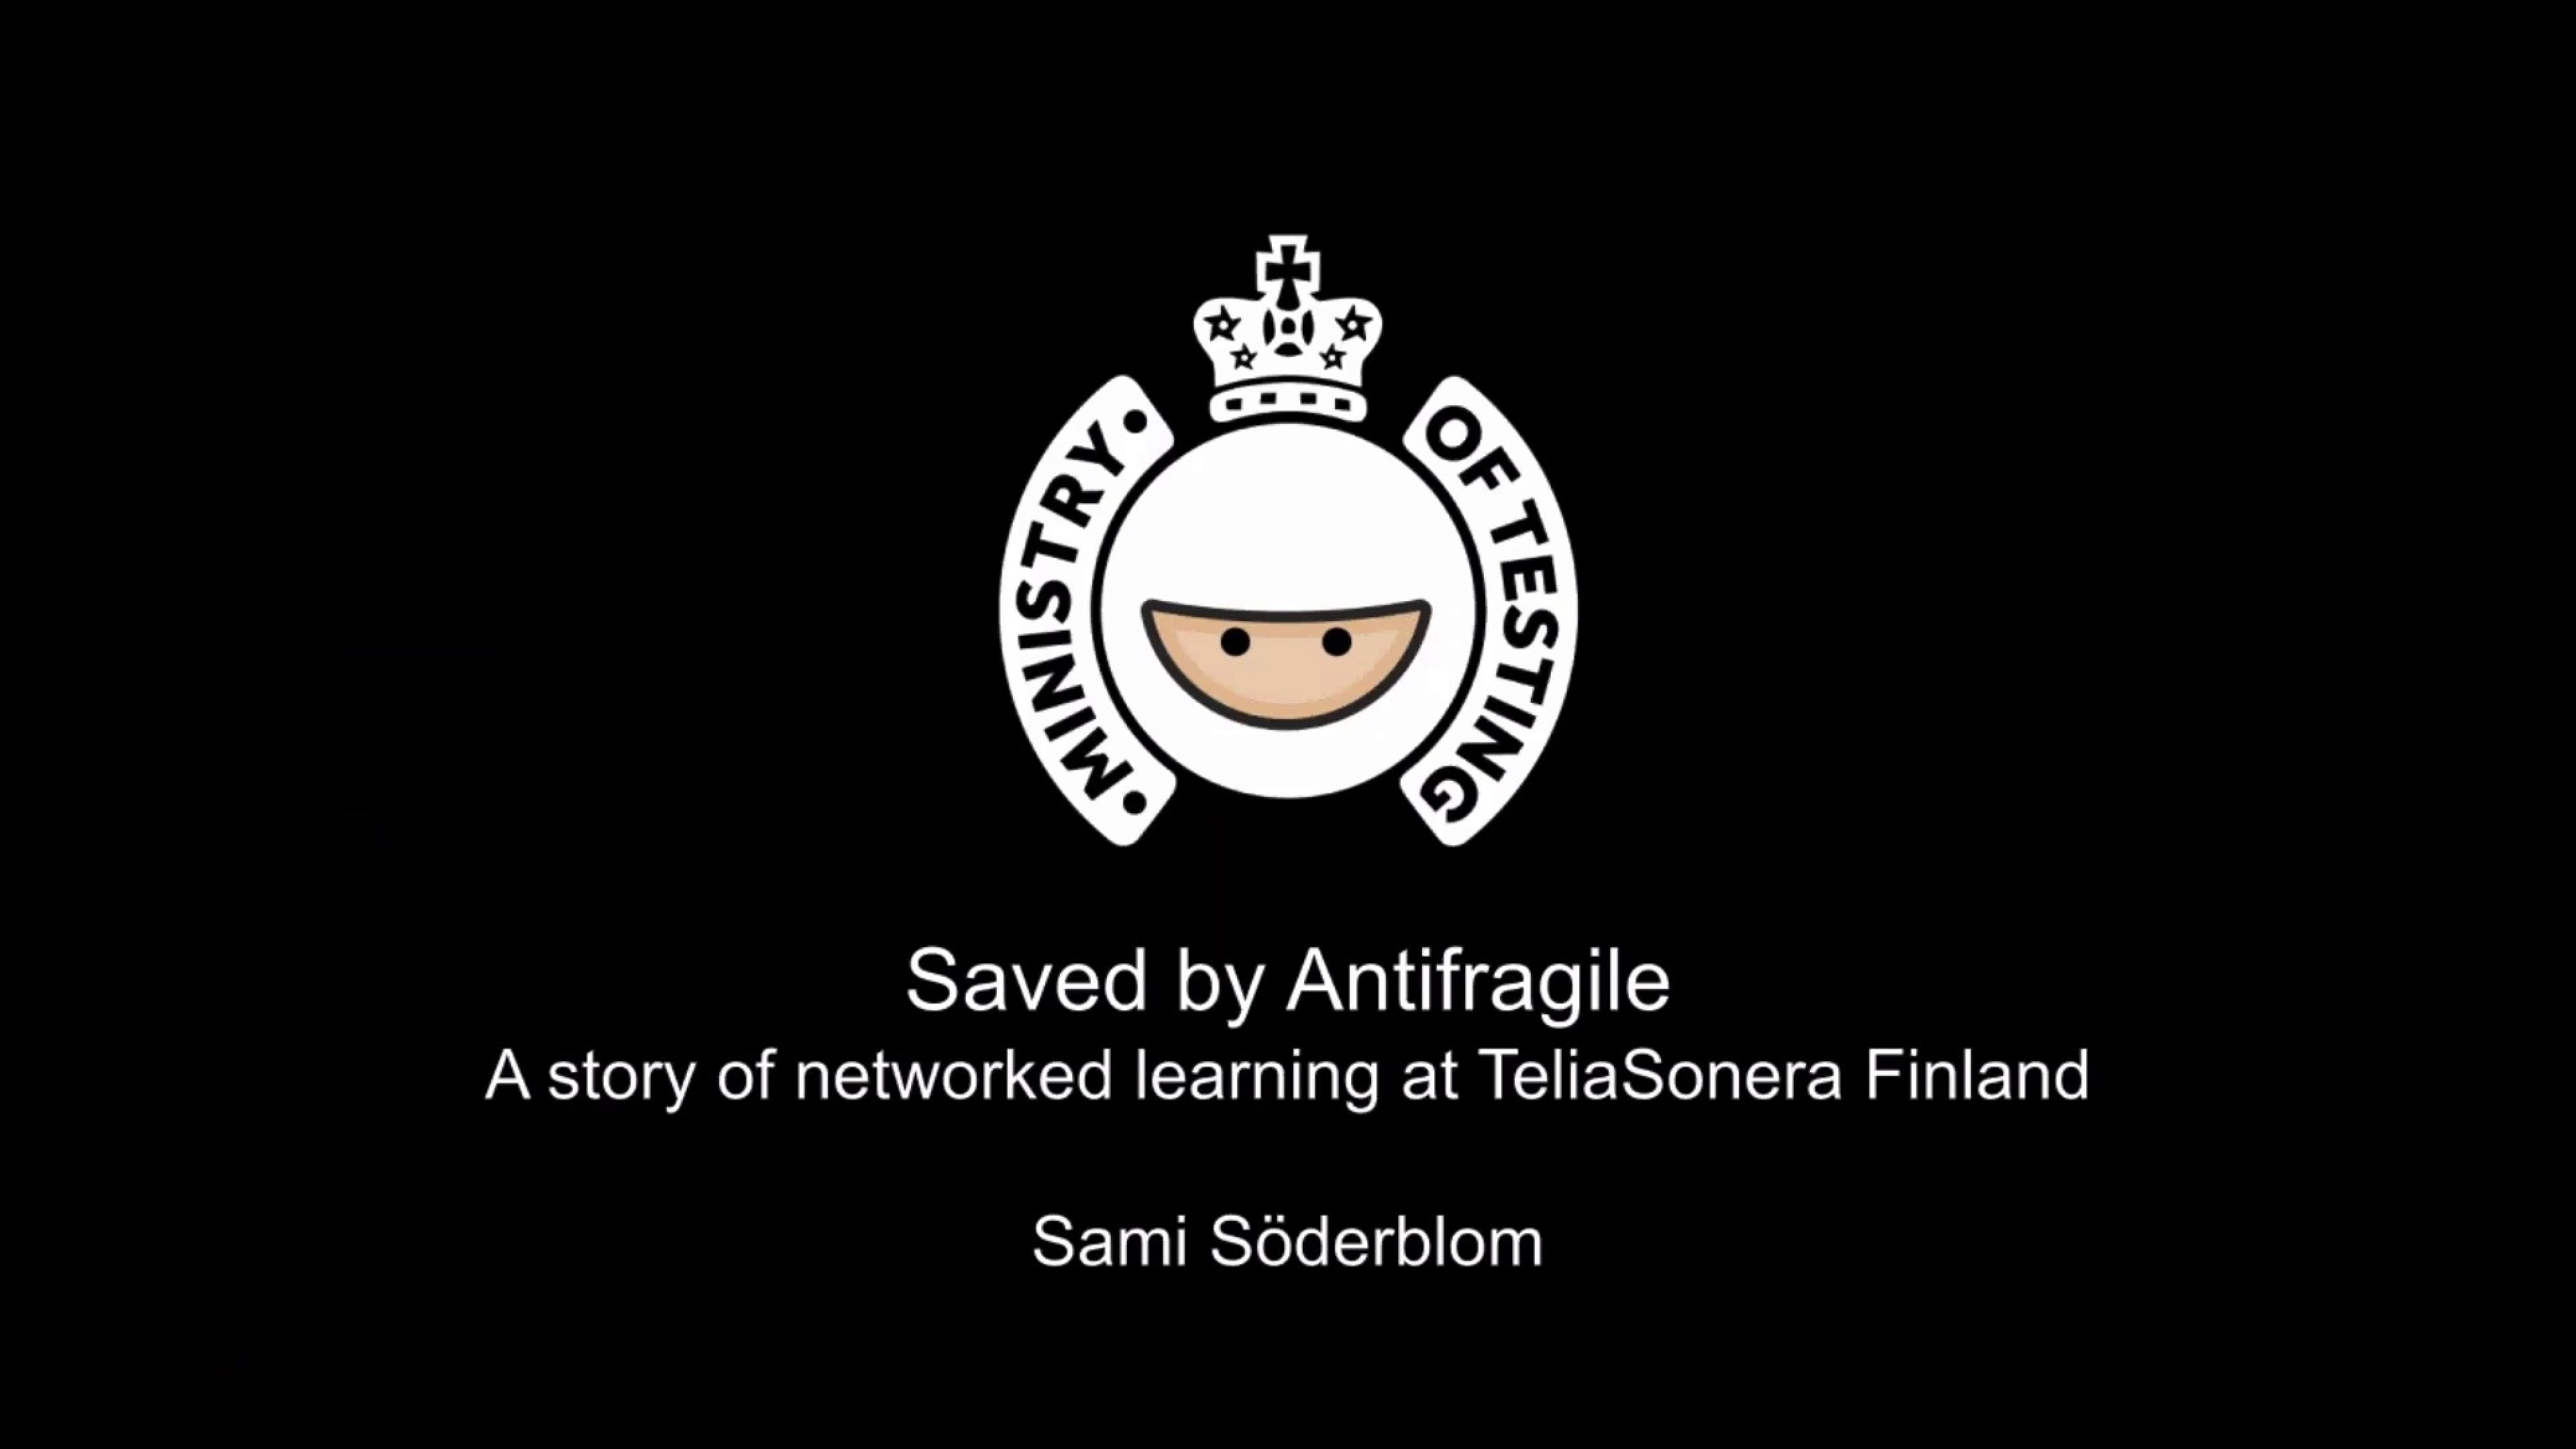 Saved by Antifragile by Sami Söderblom